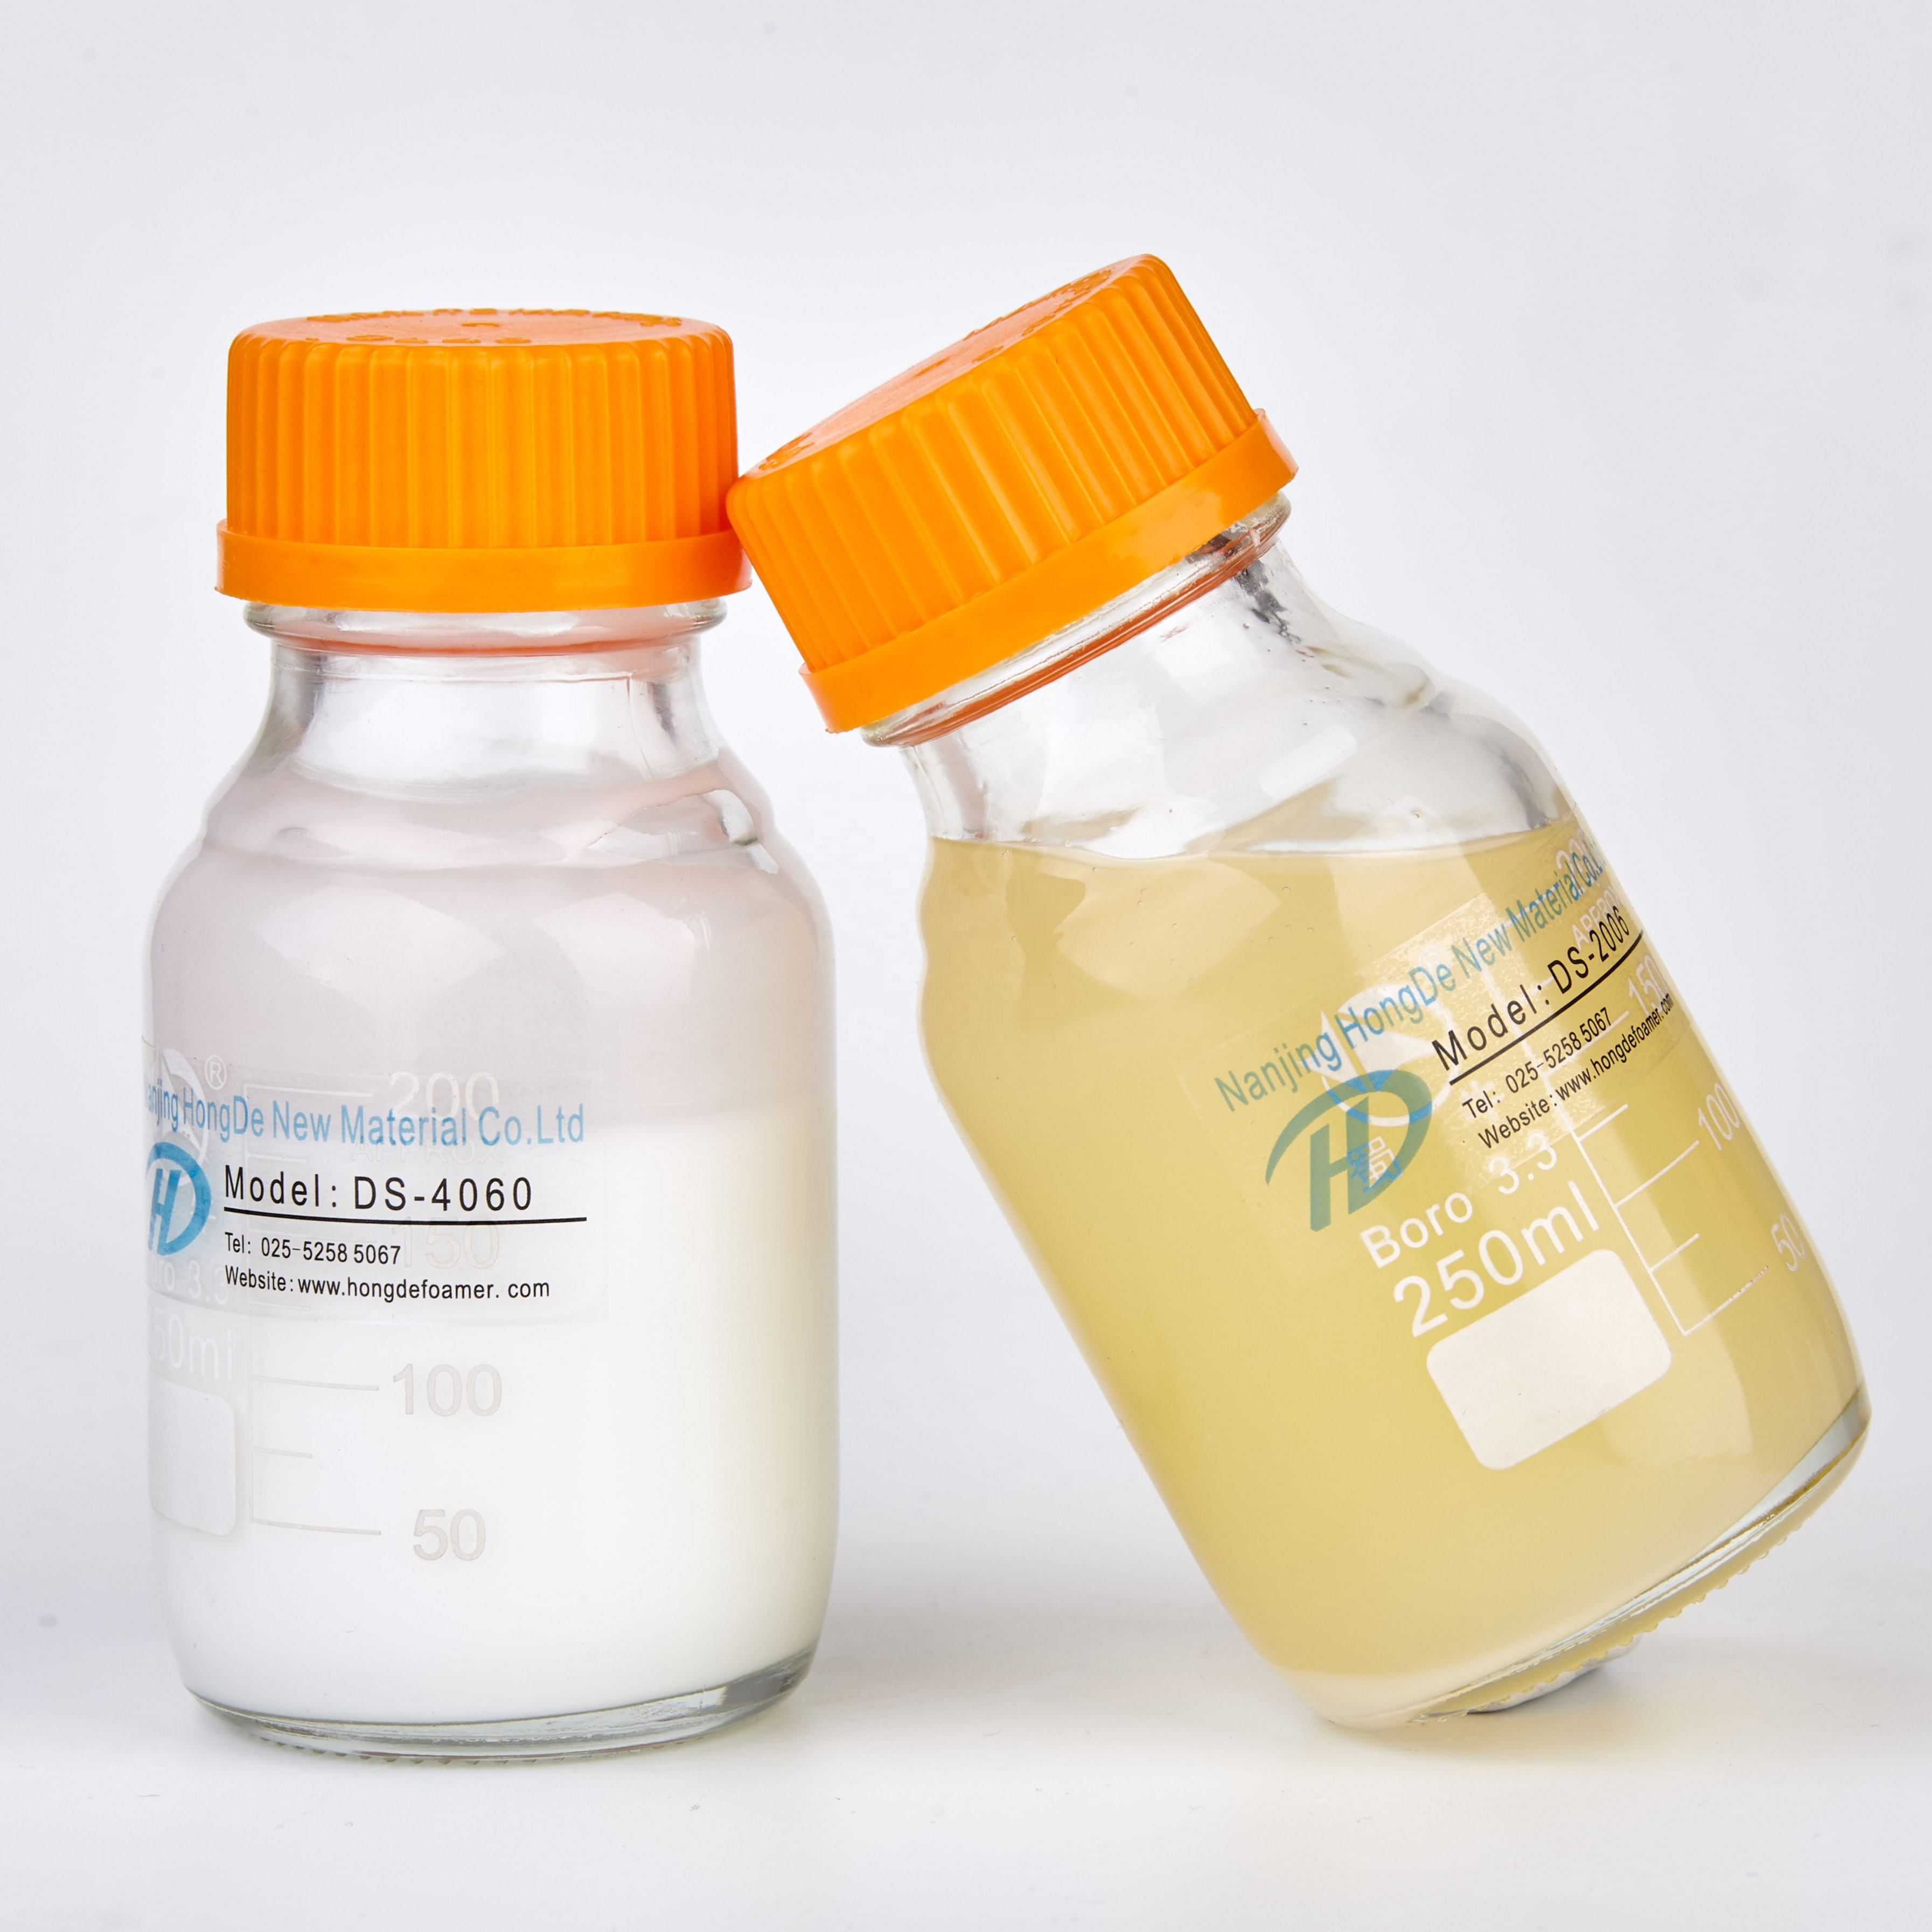 crude oil defoamer oilfield chemical silicon oil defoamers additive in chemicals